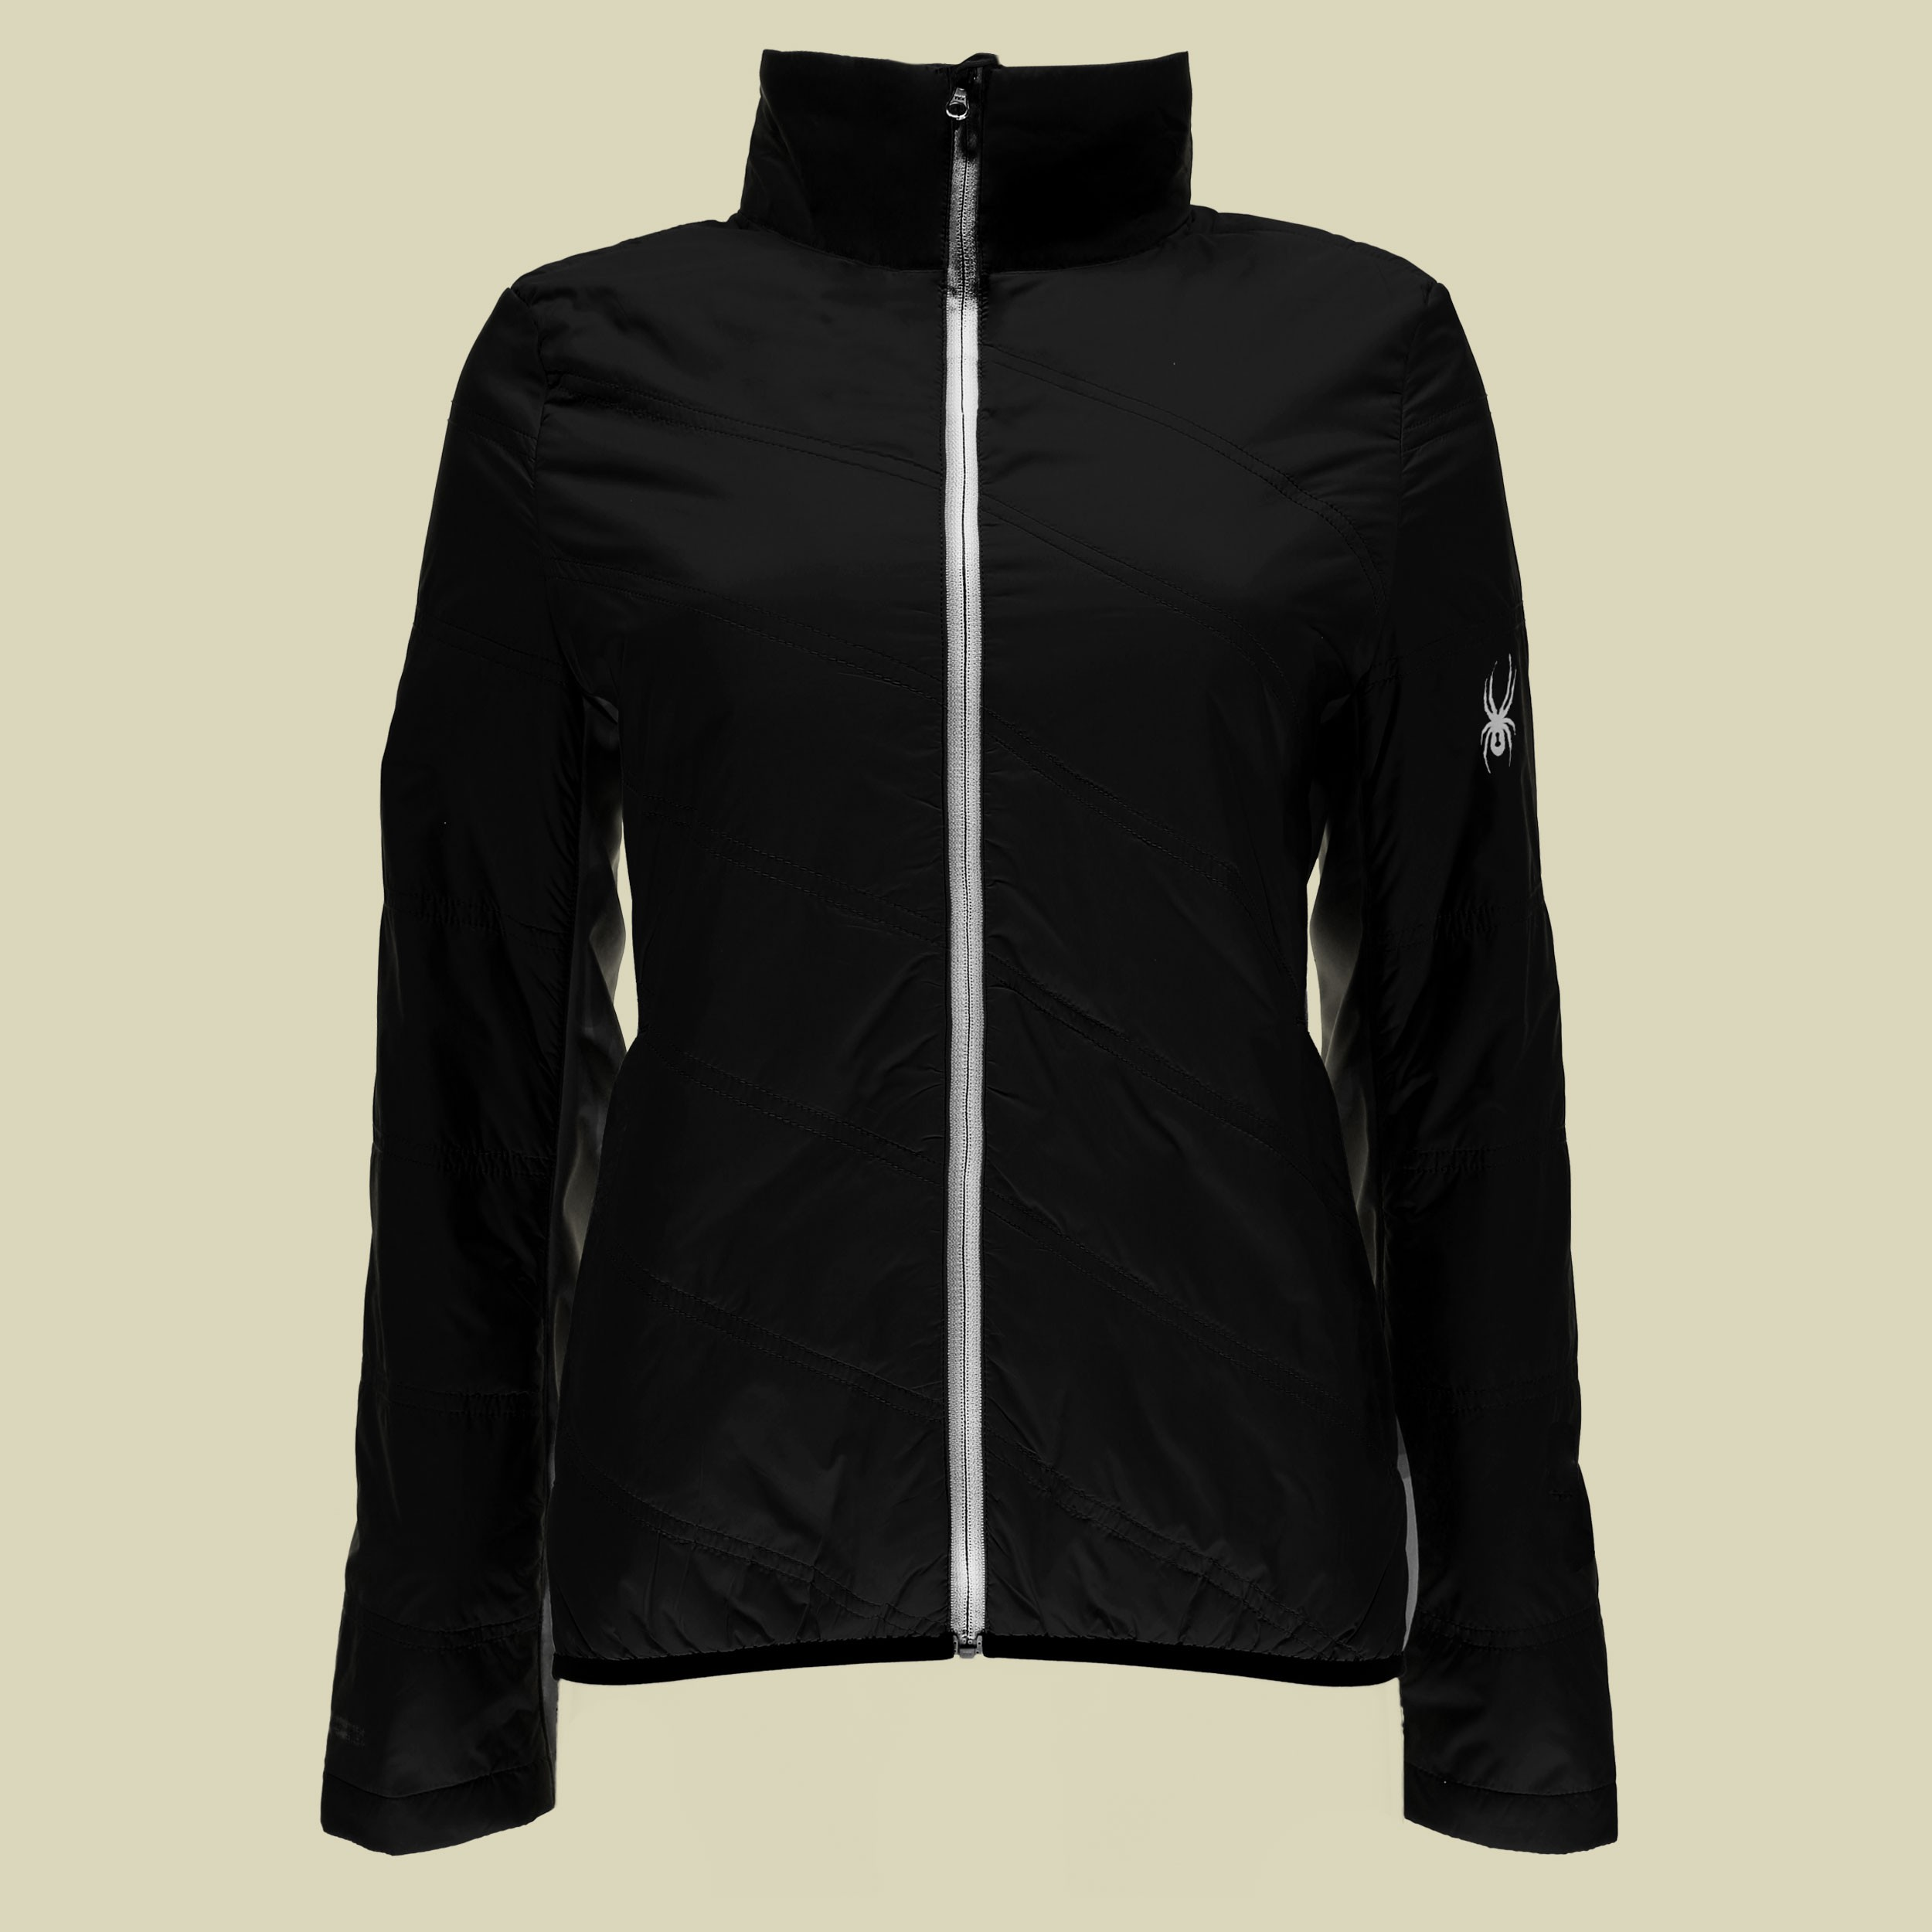 Glissade Insulator Jacket Women